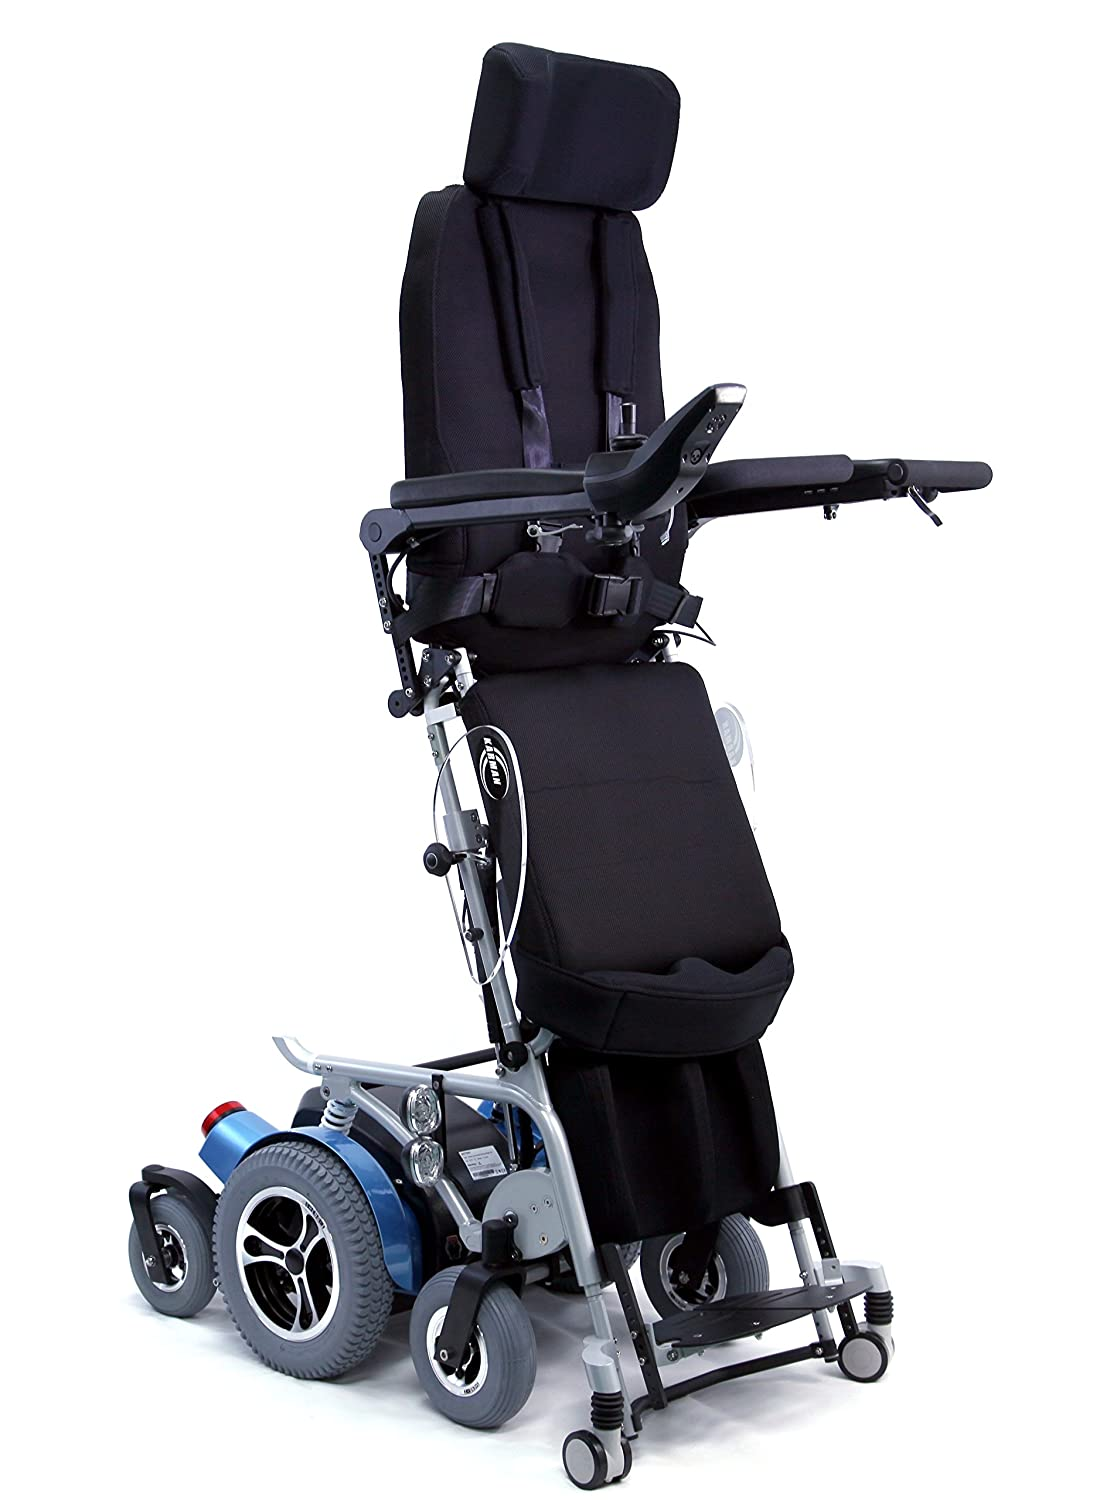 d1ce72eb8eef Karman XO-505 Fully Powered Standing Wheelchair with Power Recline, Power  Legrest, 18 Inch